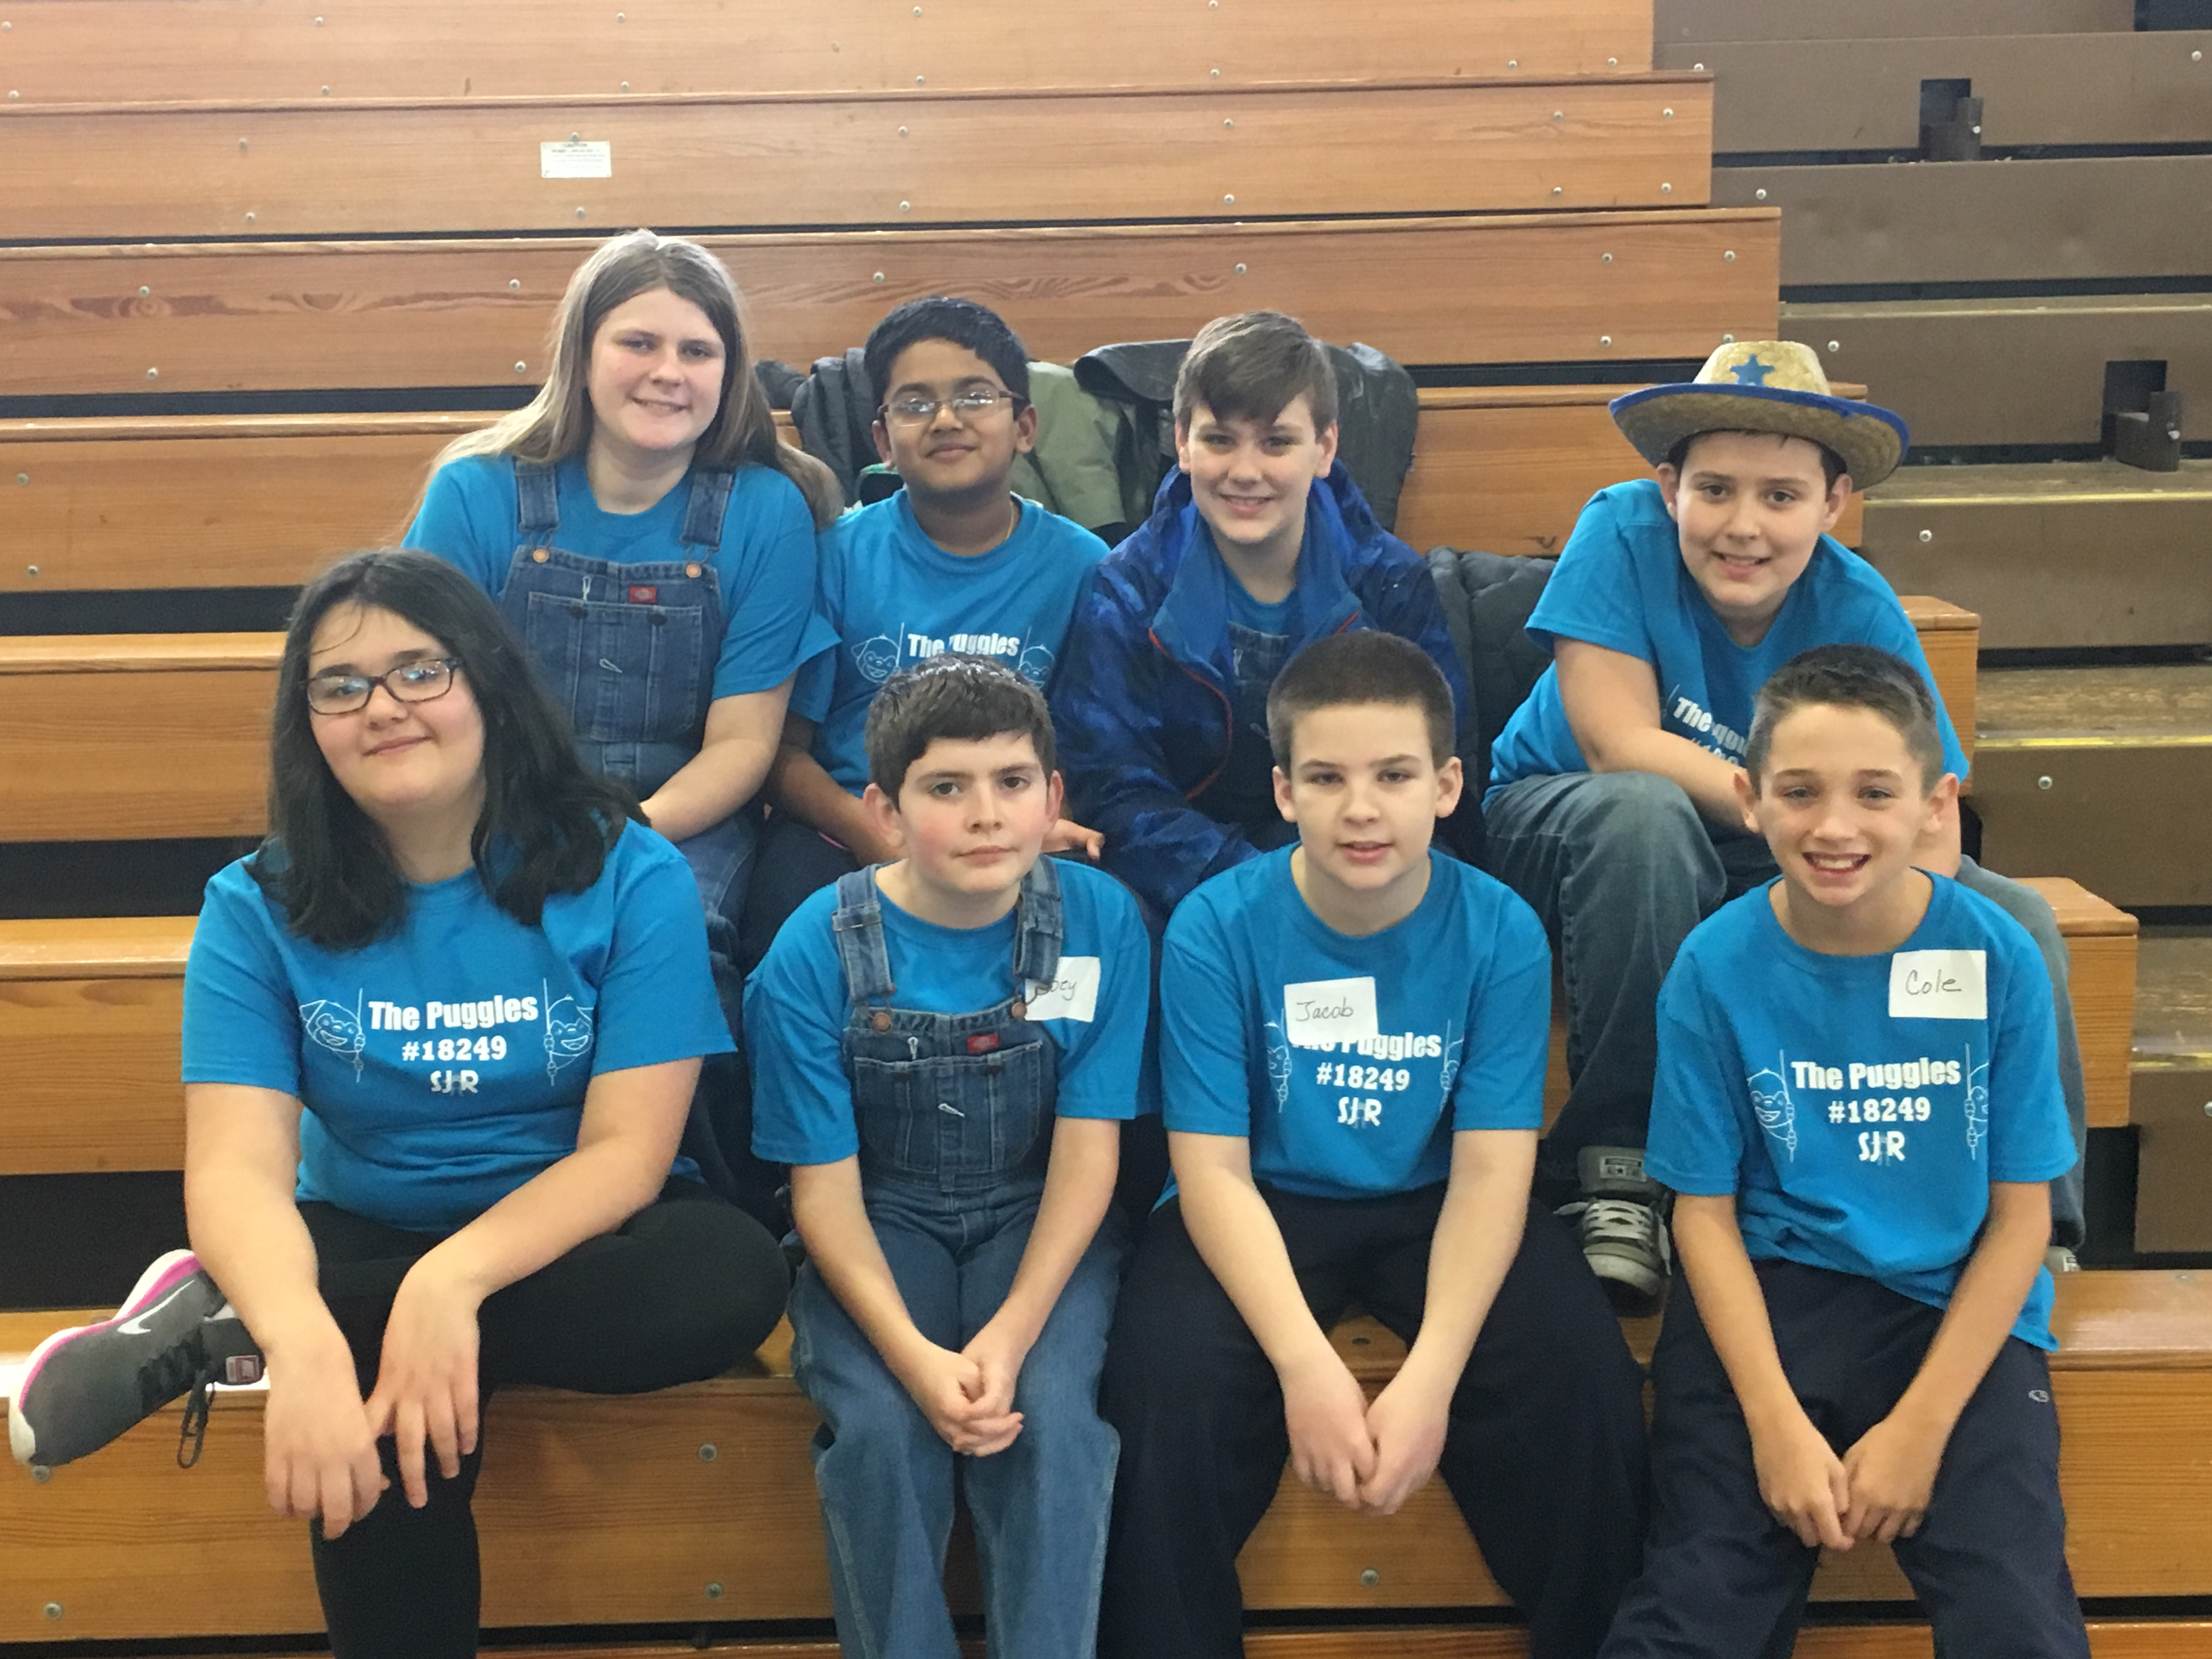 Fracking_FirstLegoTeam_NewJersey